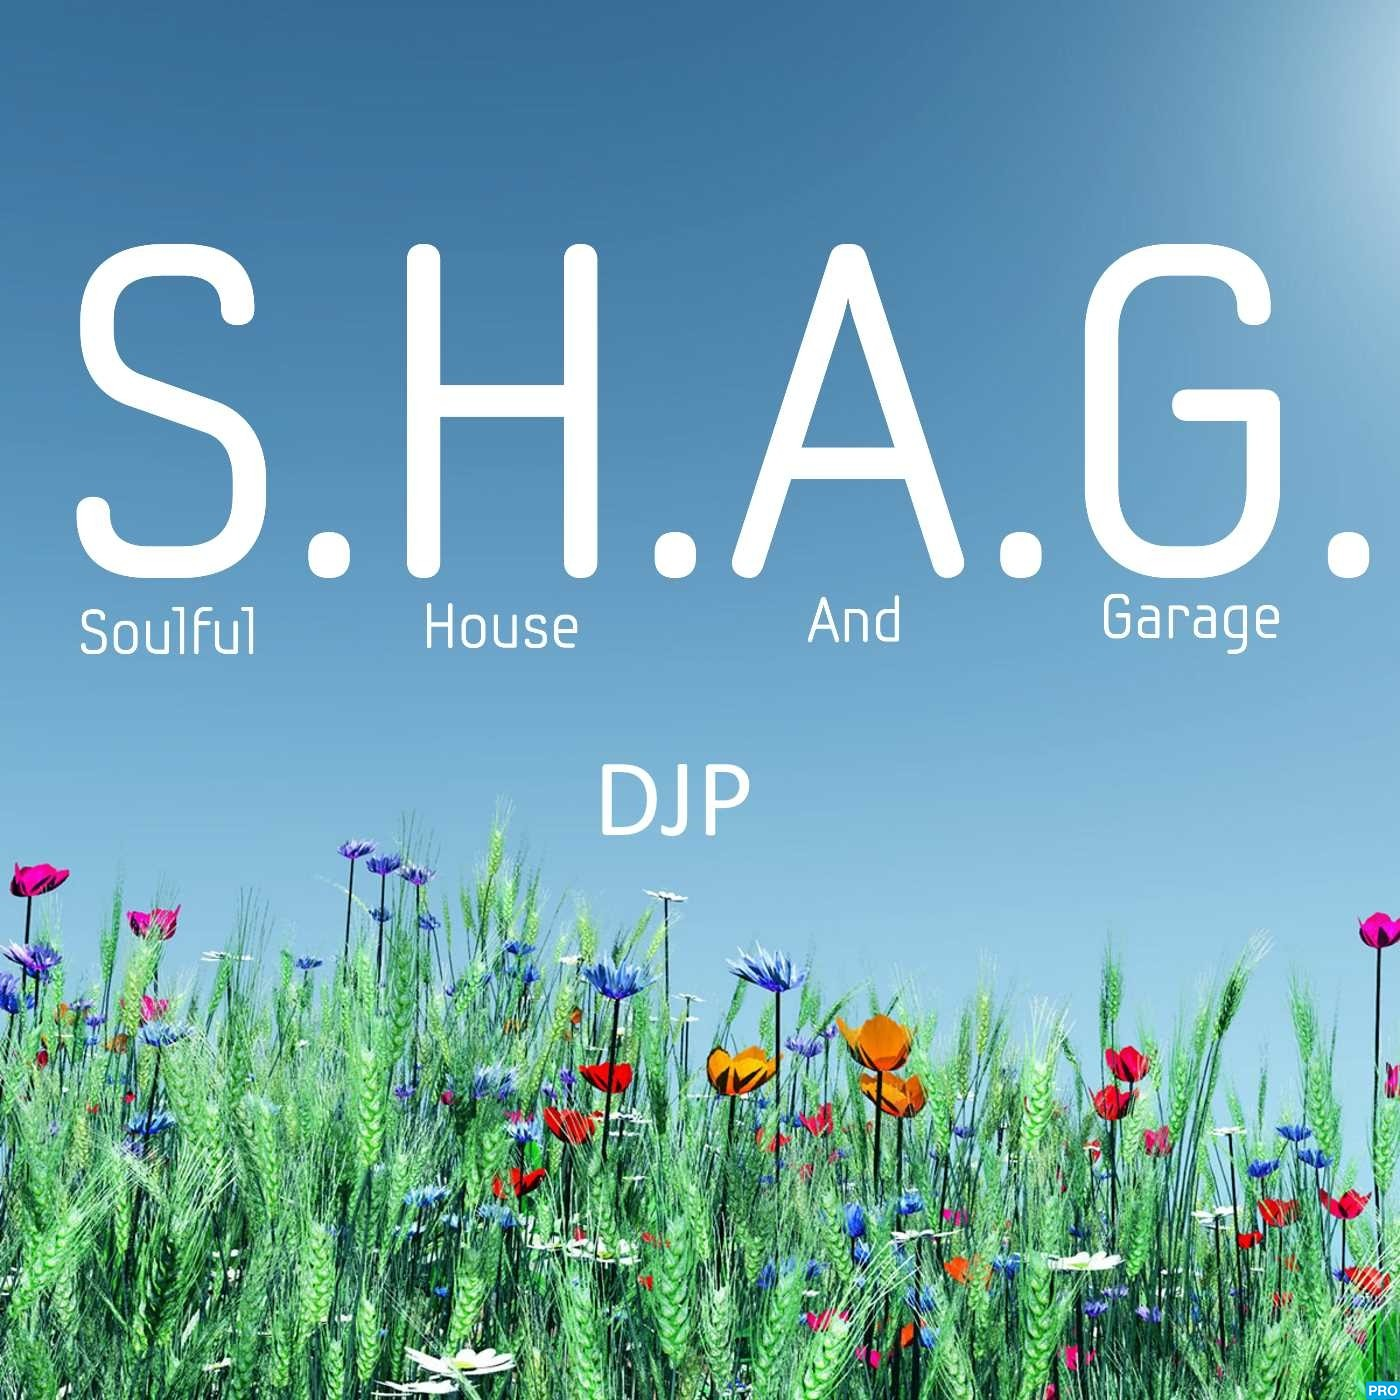 DJP's S.H.A.G. Soulful House And Garage live Radio show on http://PressureRadio.com